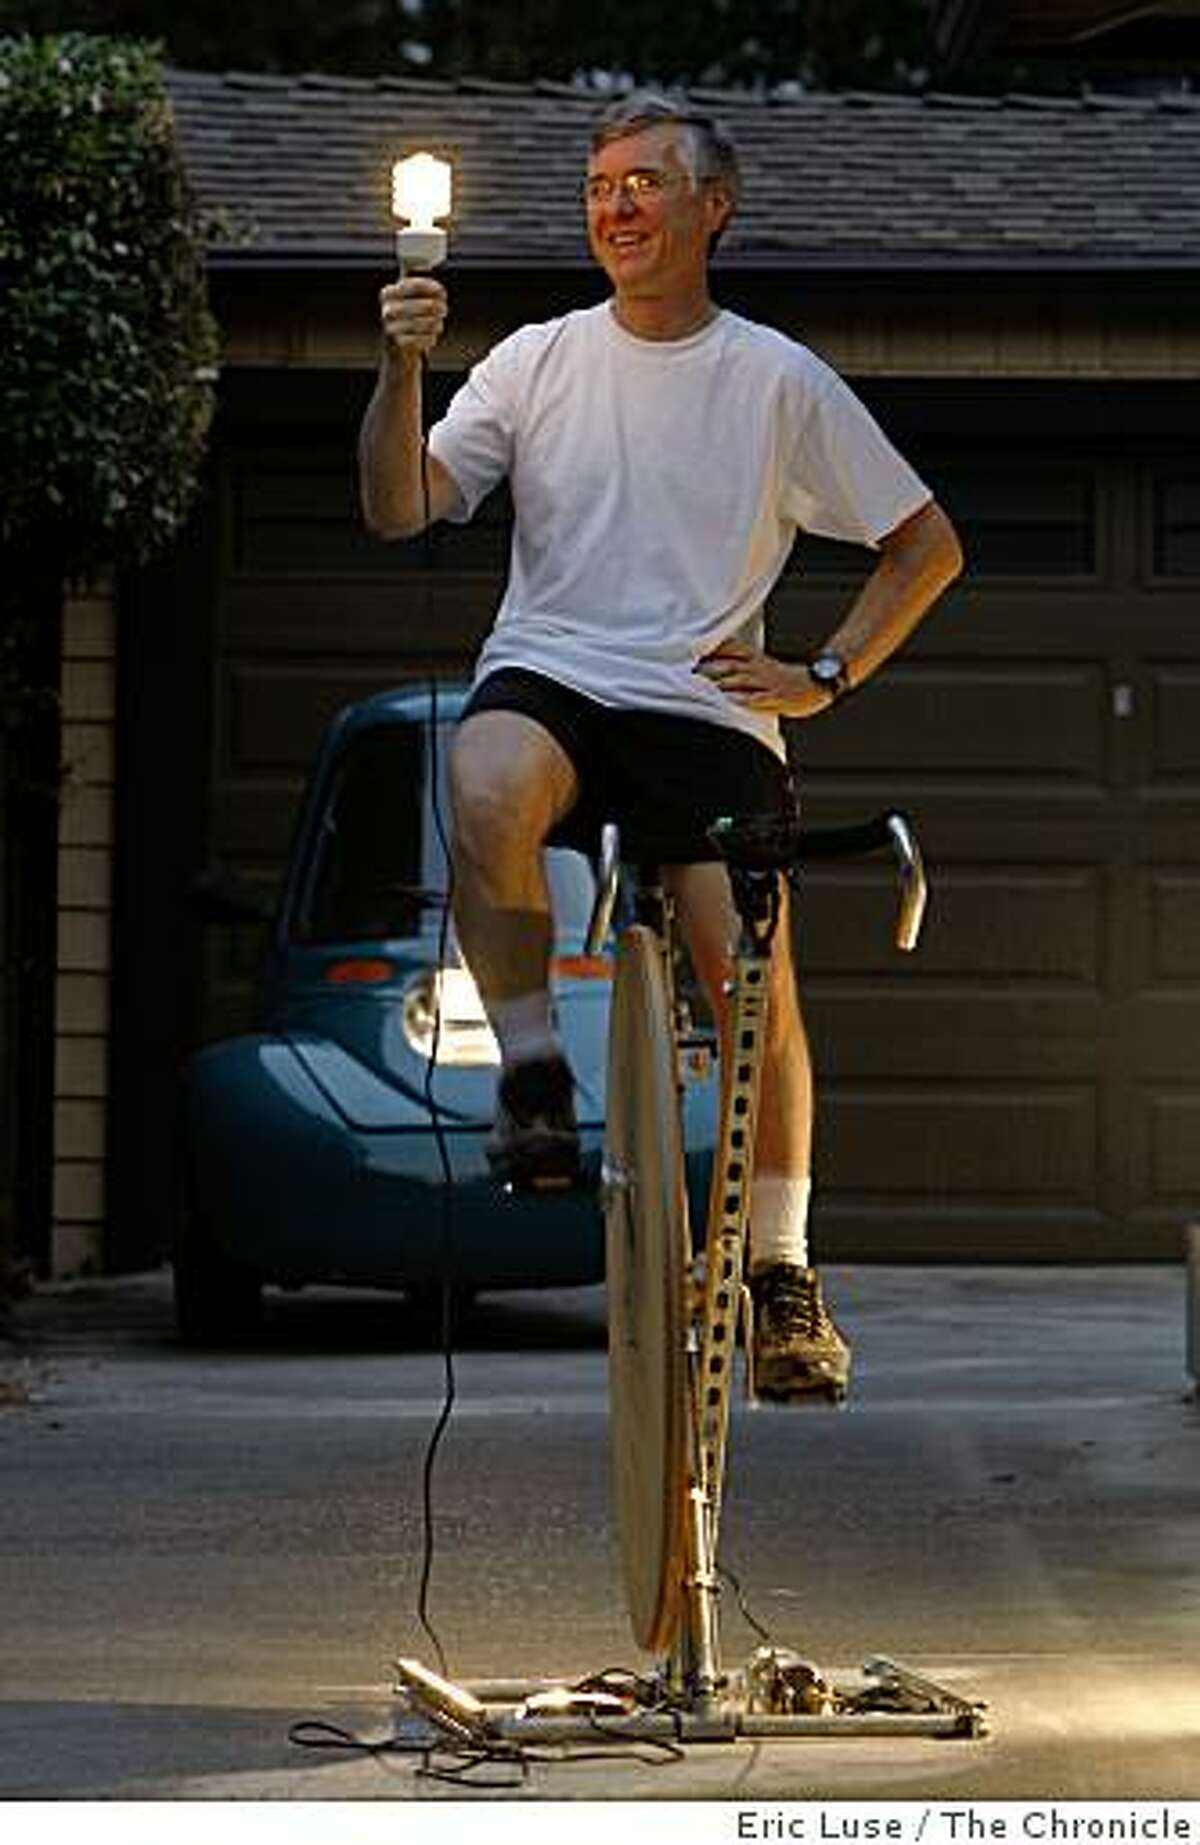 David Butcher holds a light bulb he is generating power for from his PPPM, Pedal Power Prime Mover, at his him in San Jose photographed on Wednesday, June 25, 2008. From the pedal power it goes to a 1.5 Farad Audio Capacitor to an inventor and then lights the bulb.Photo by Eric Luse/ The Chronicle